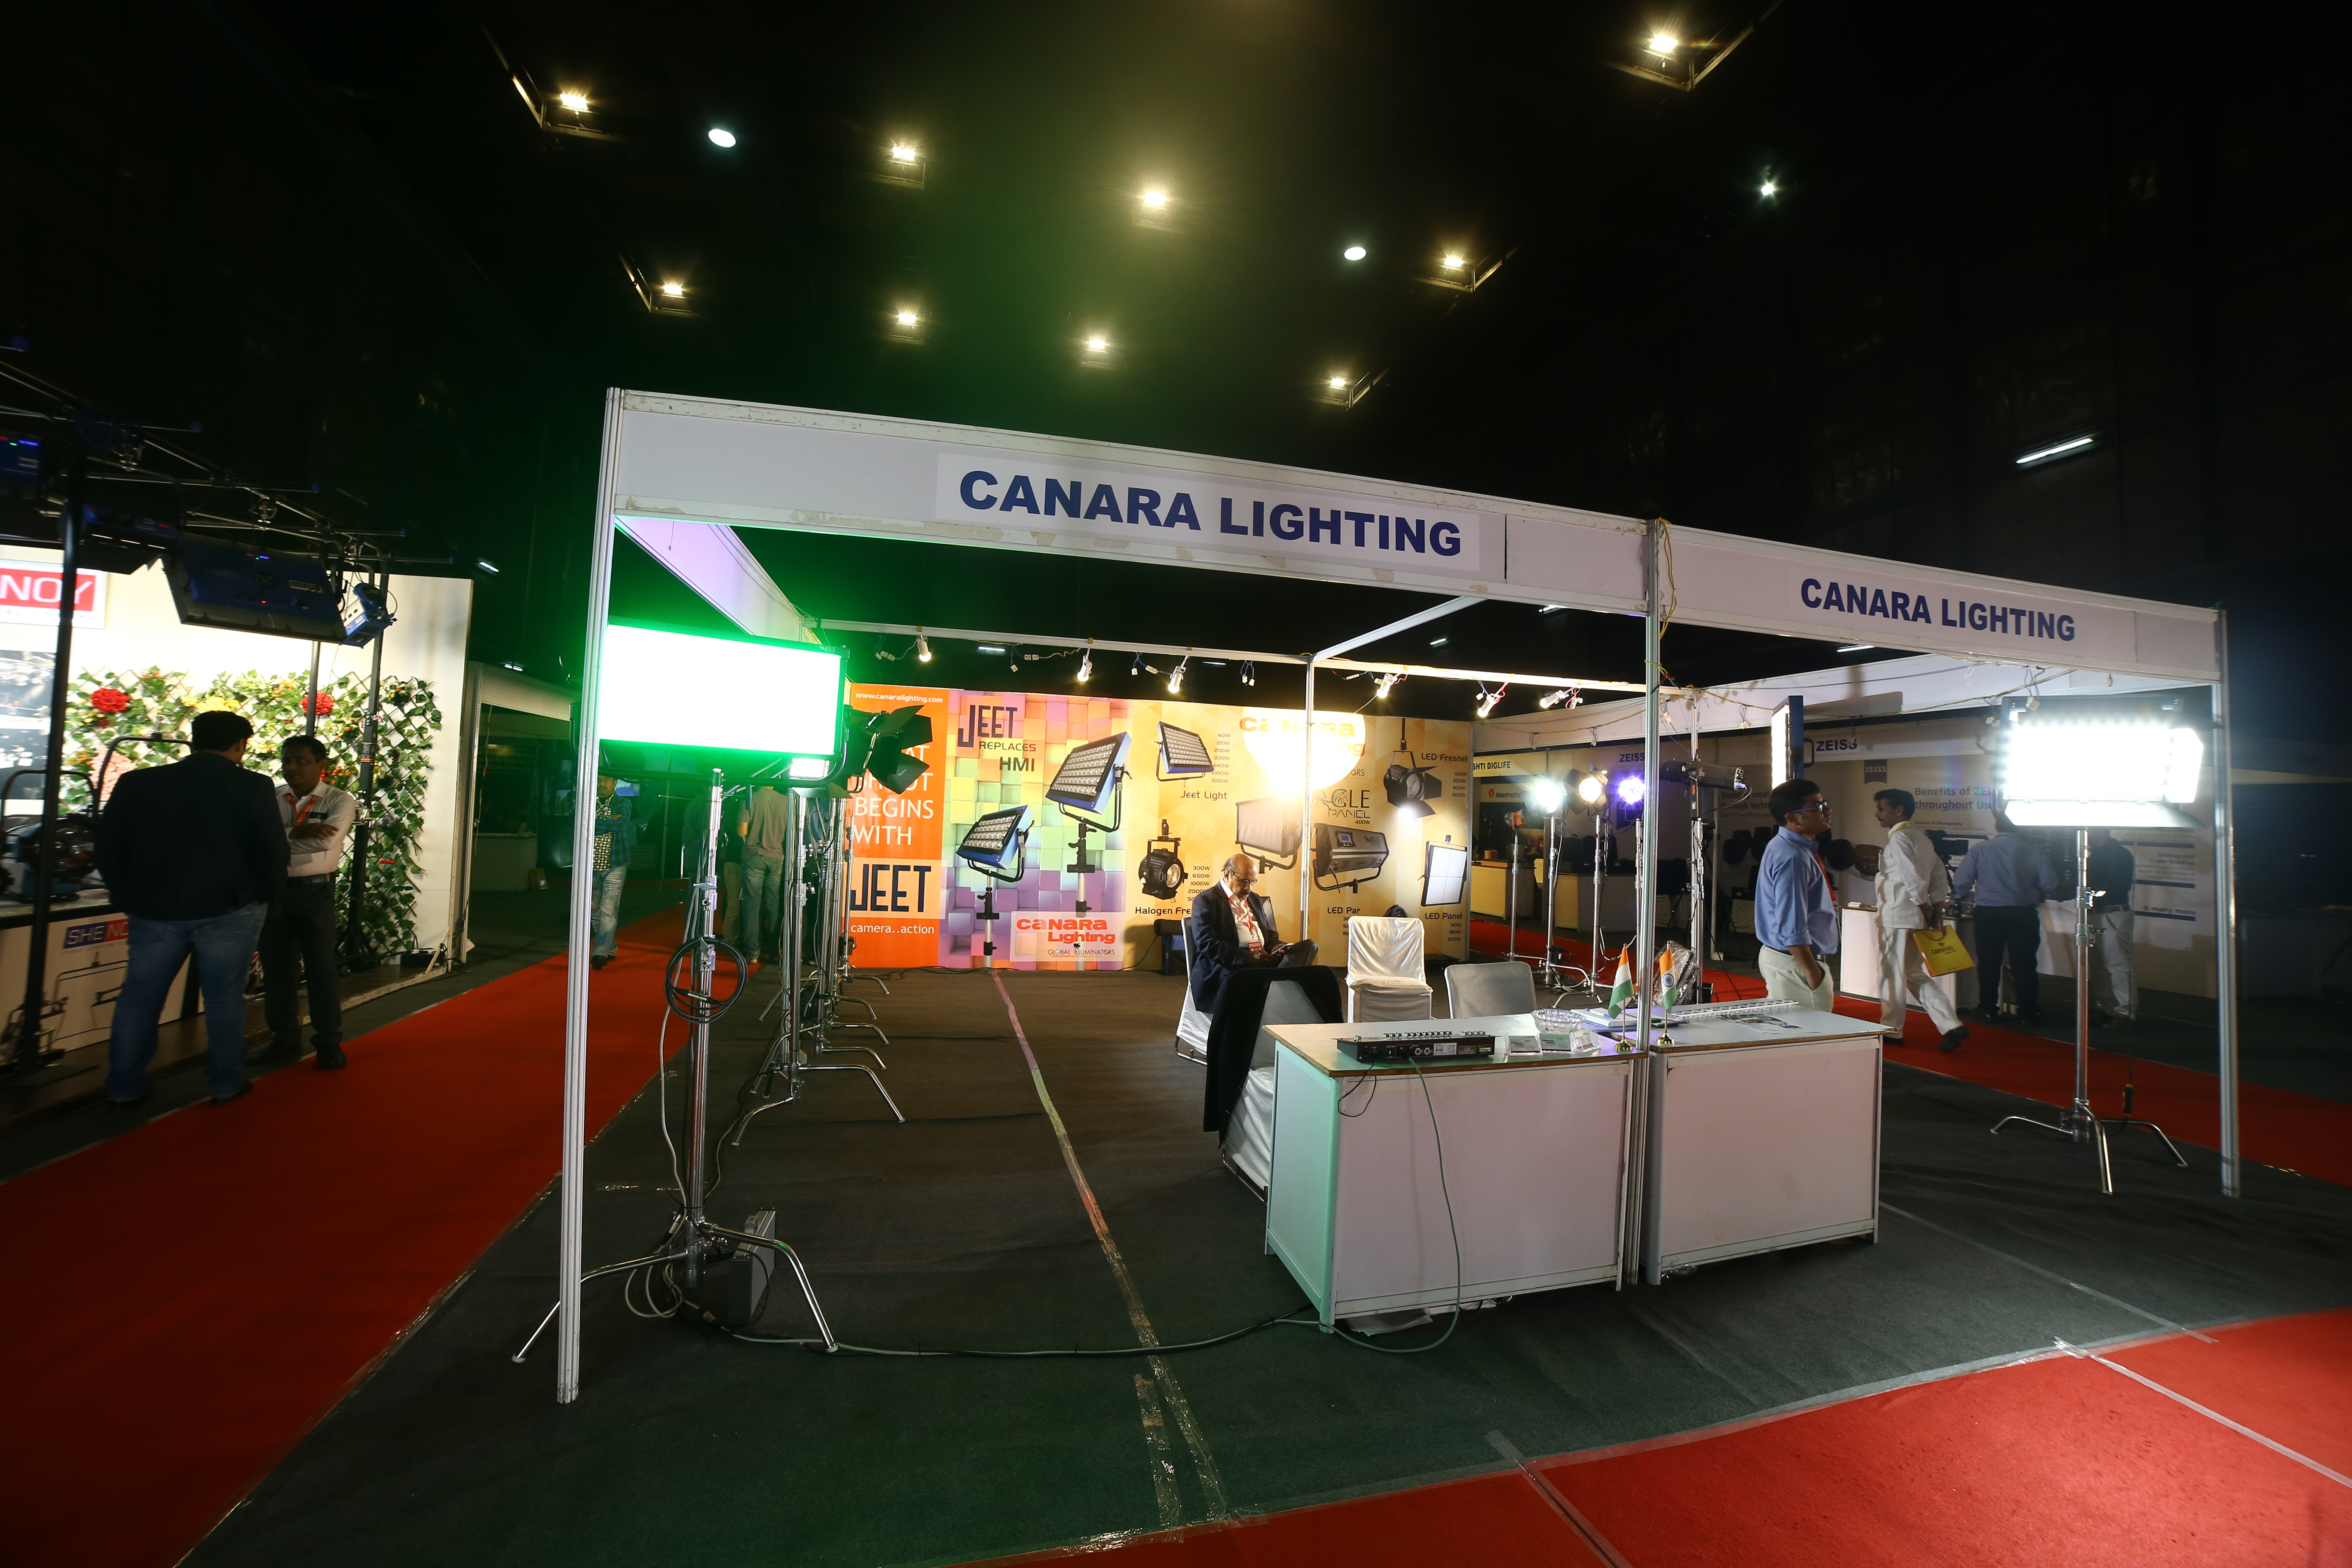 Canara Lighting